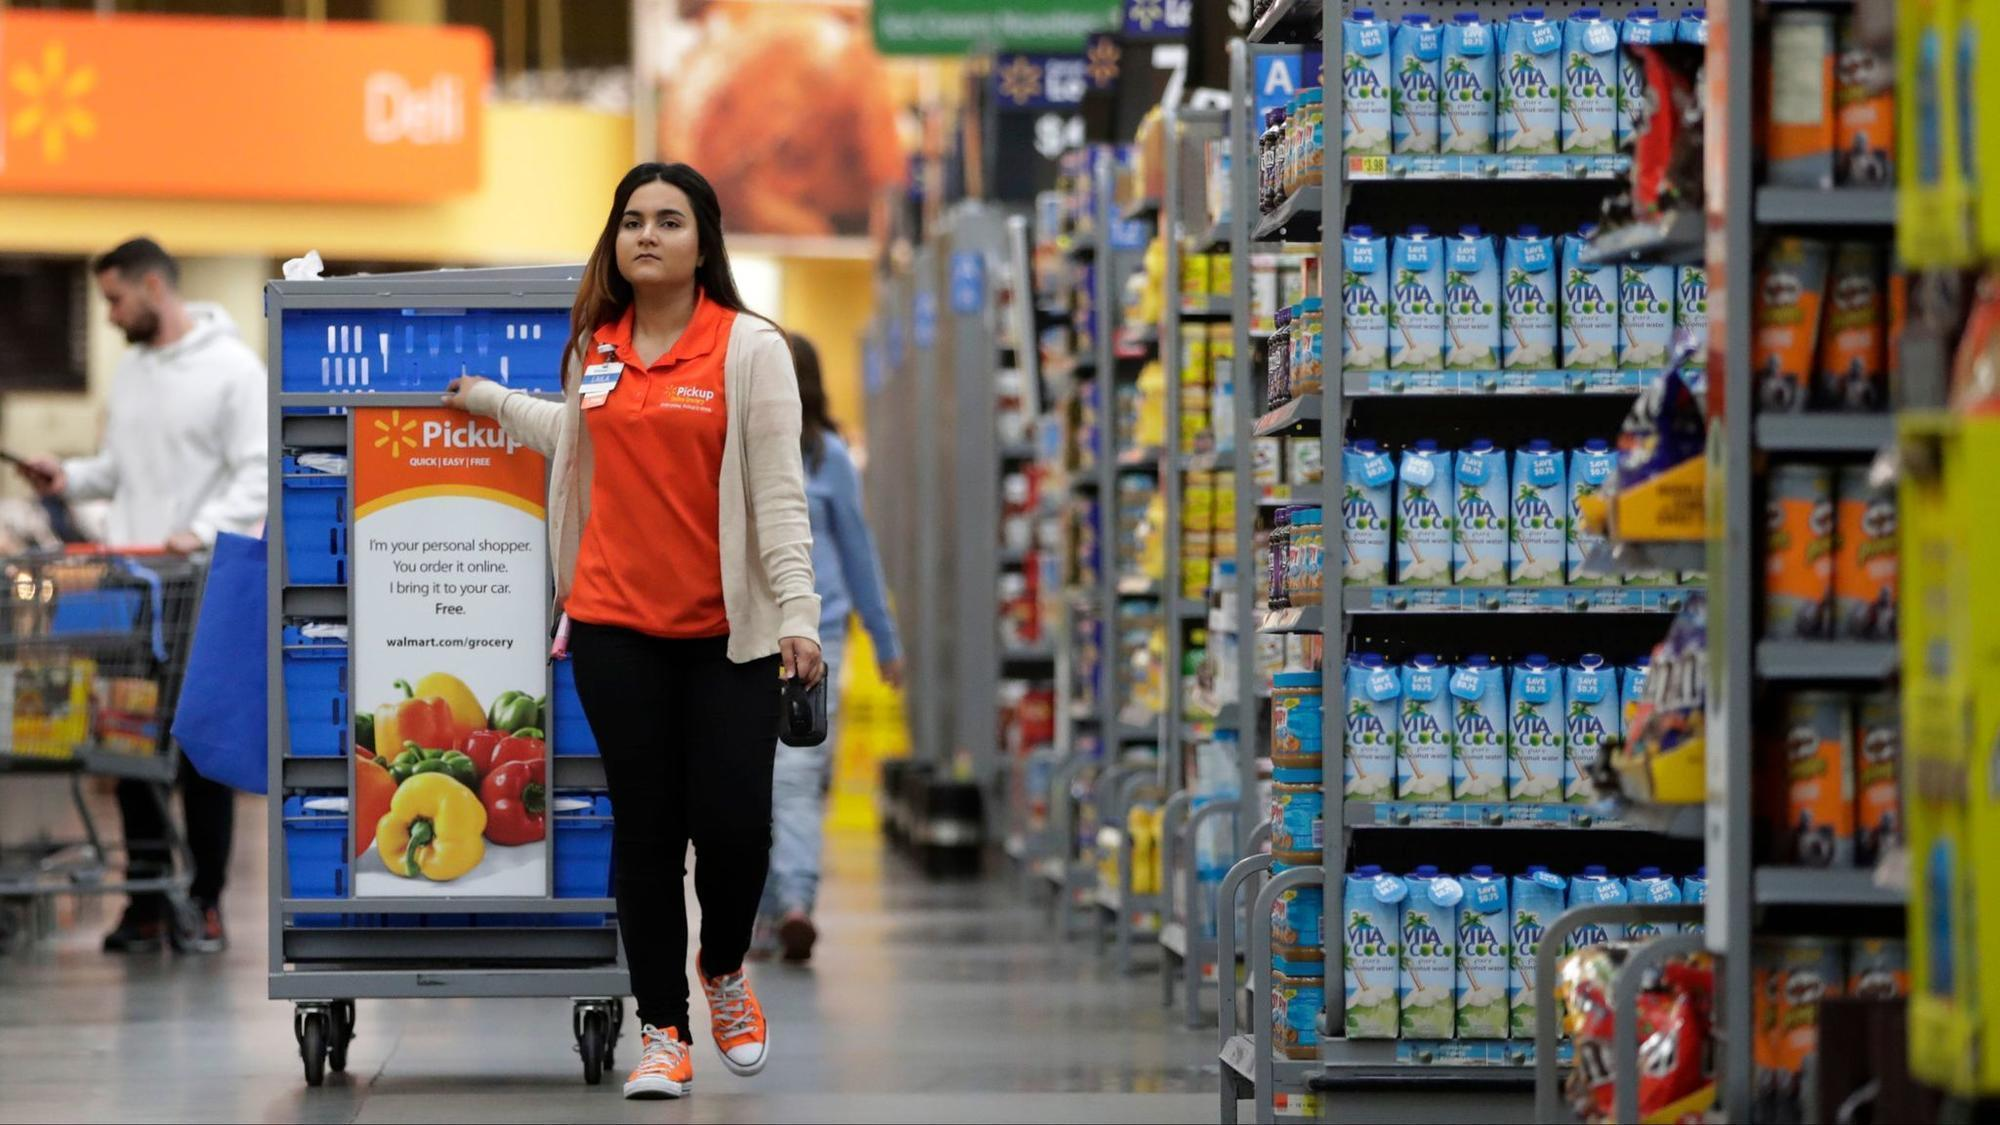 Retail Workers Jobs Are Transforming As Shoppers Habits